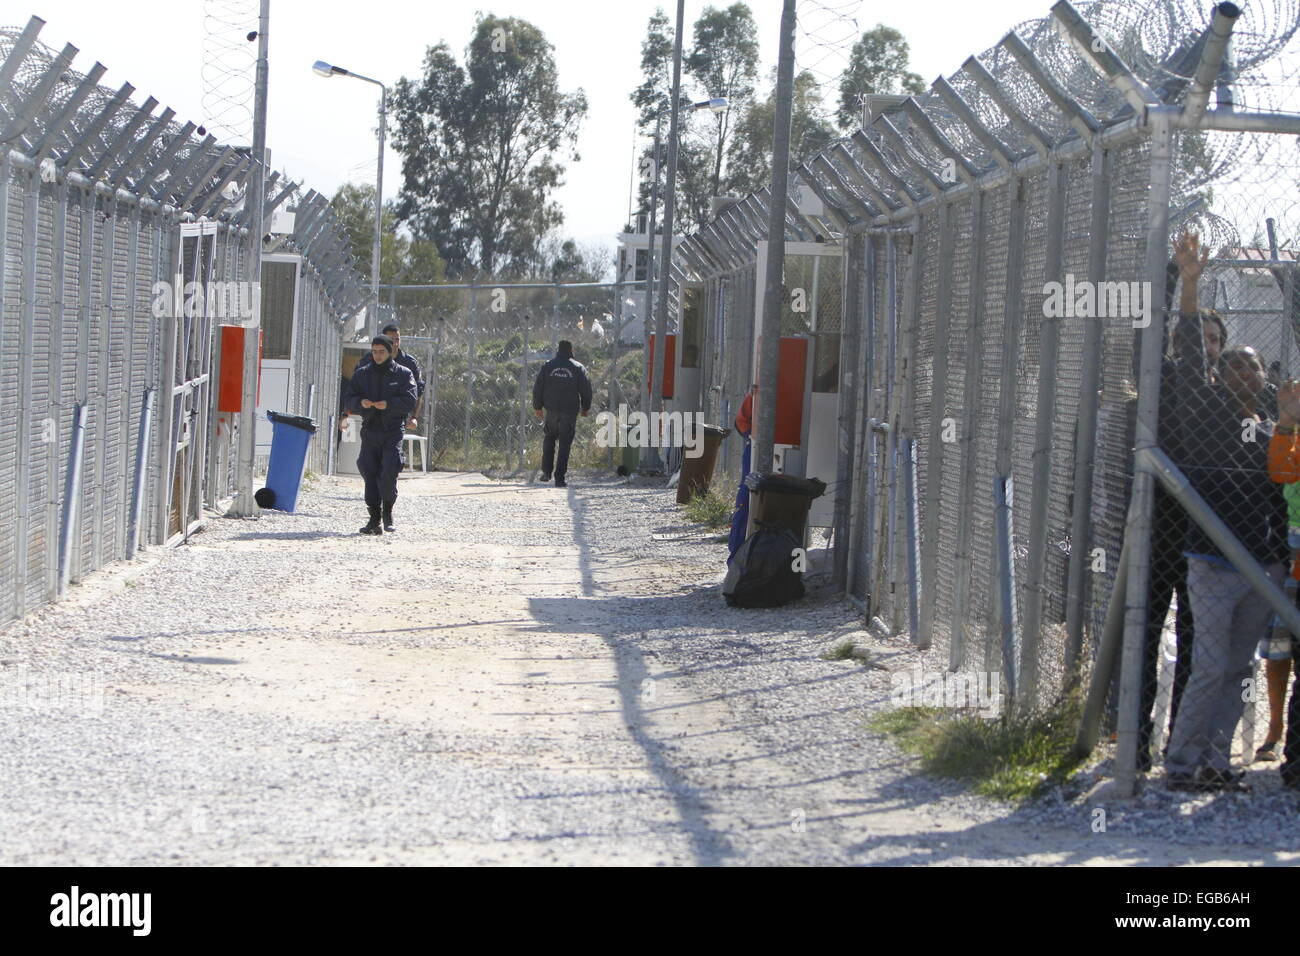 Athens, Greece. 21st February 2015. View into the detention camp with two separated areas. Minor scuffles between - Stock Image